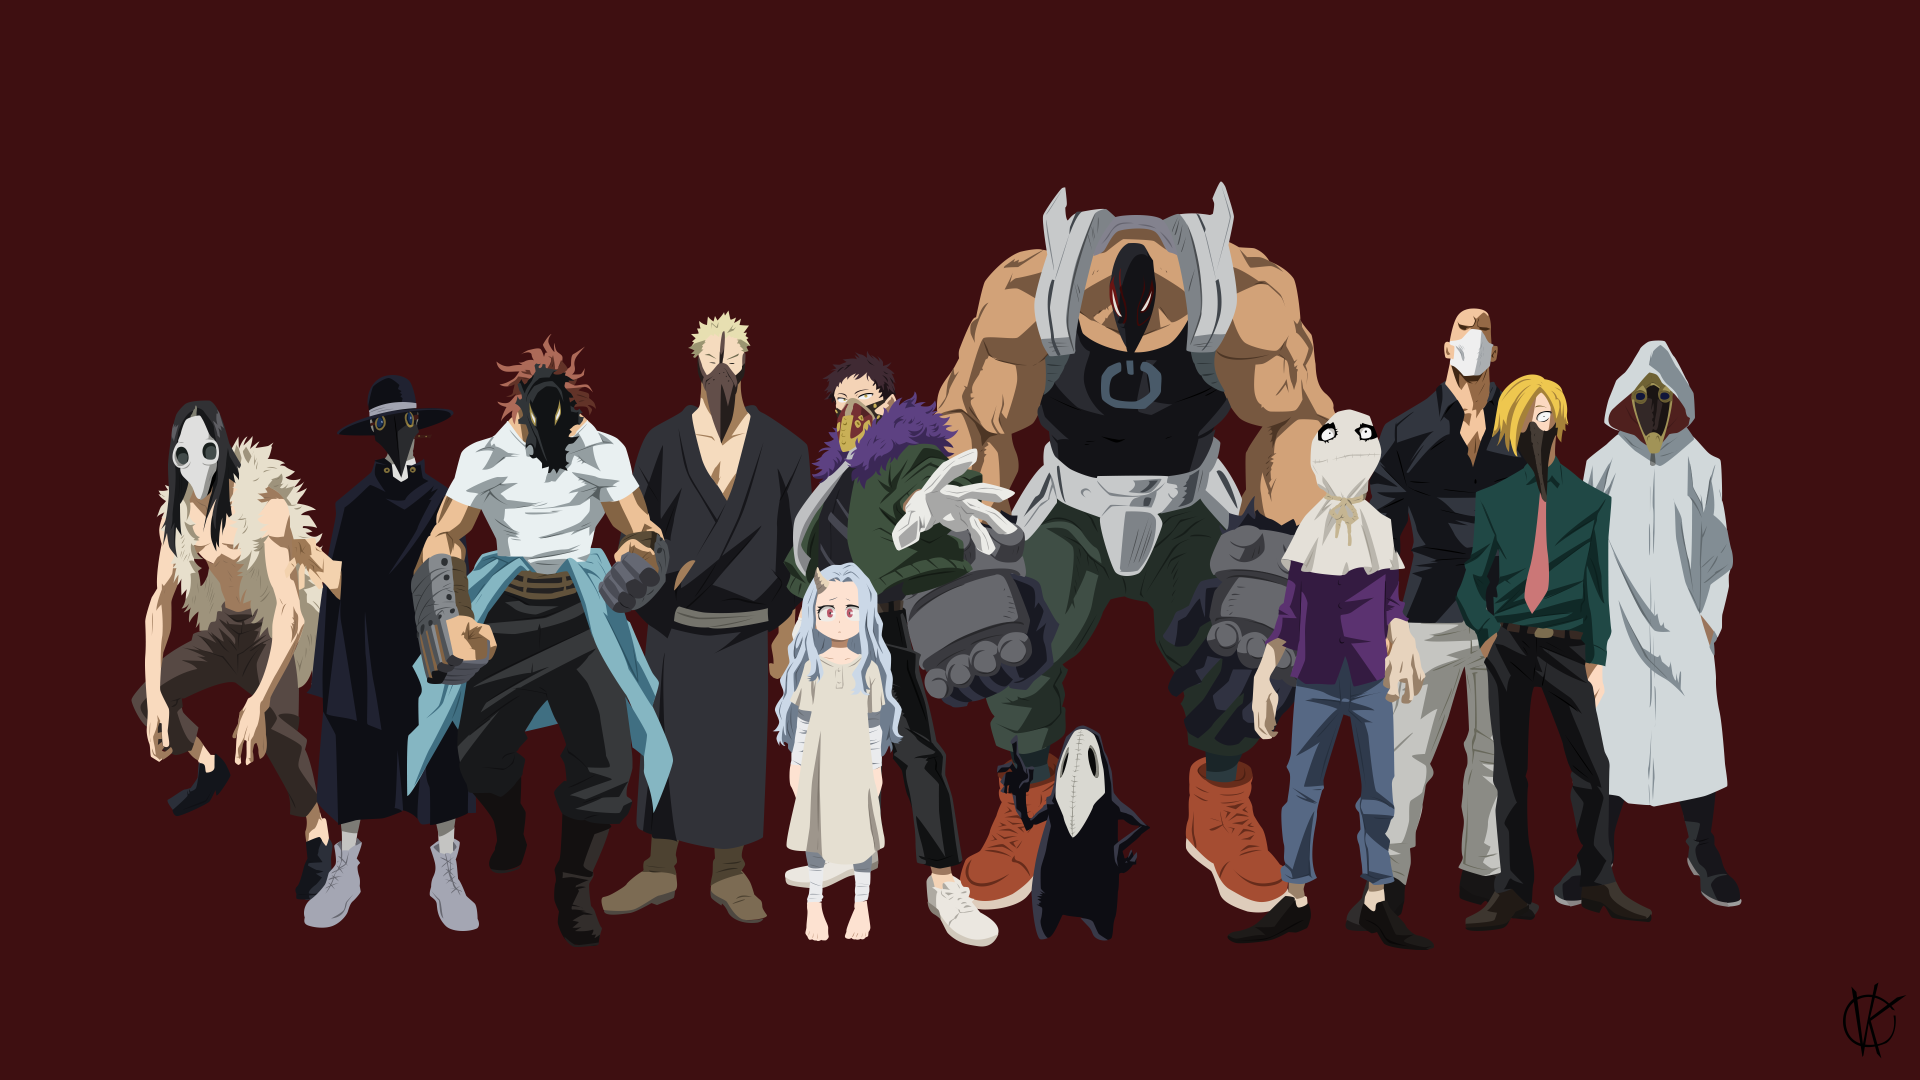 Shie Hassaikai Dbzff Wiki Fandom In this video we'll be discussing each member of my hero academia season 4's shie hassaikai, better known as the eight precepts of death. shie hassaikai dbzff wiki fandom